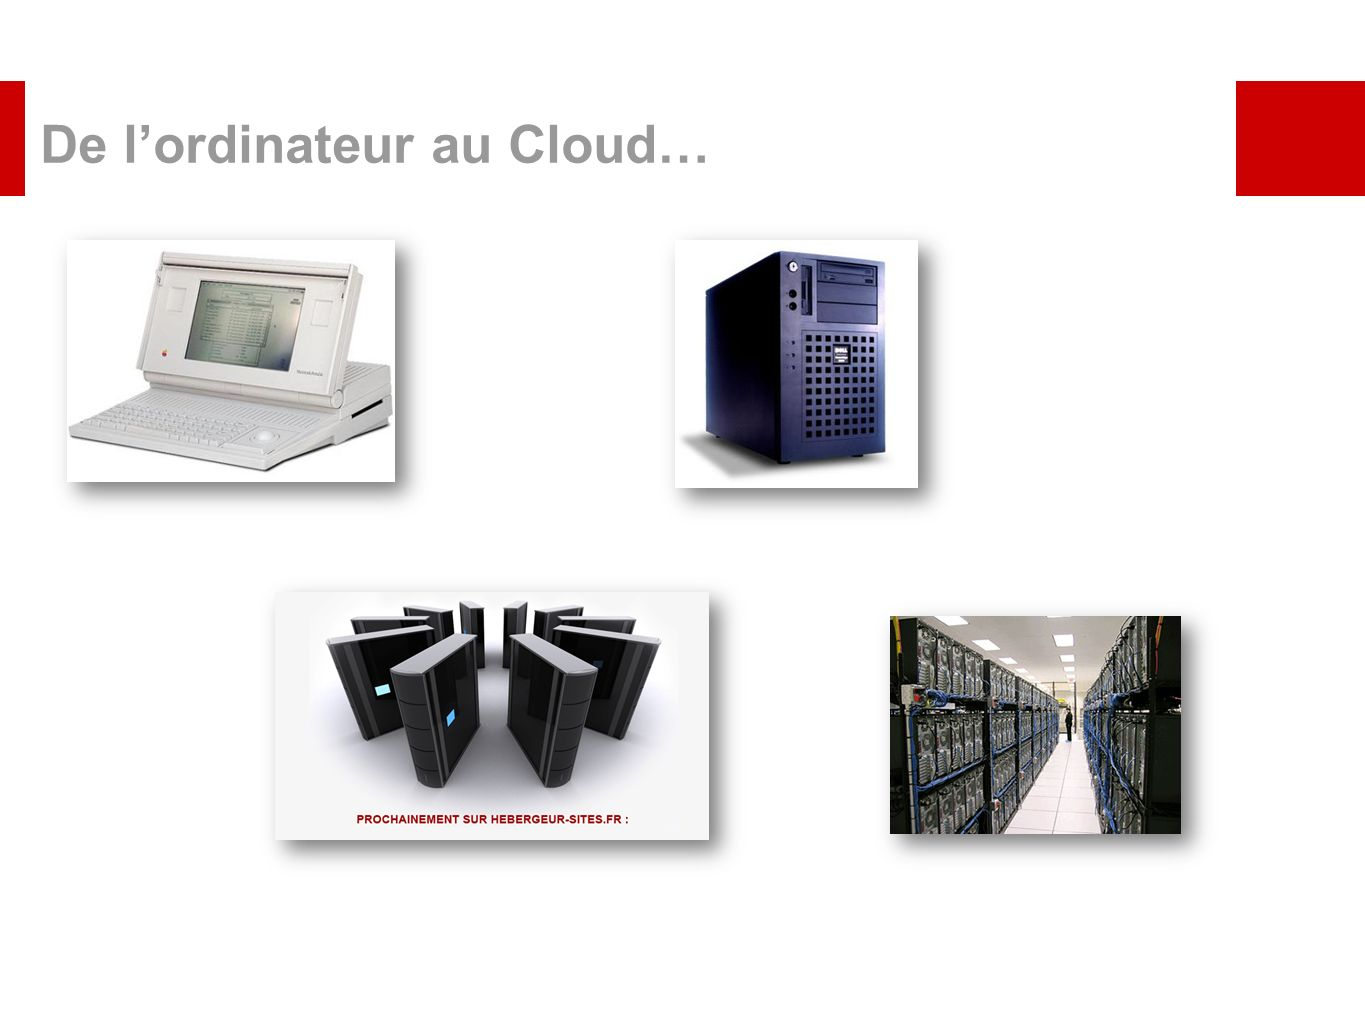 De l'ordinateur au Cloud…